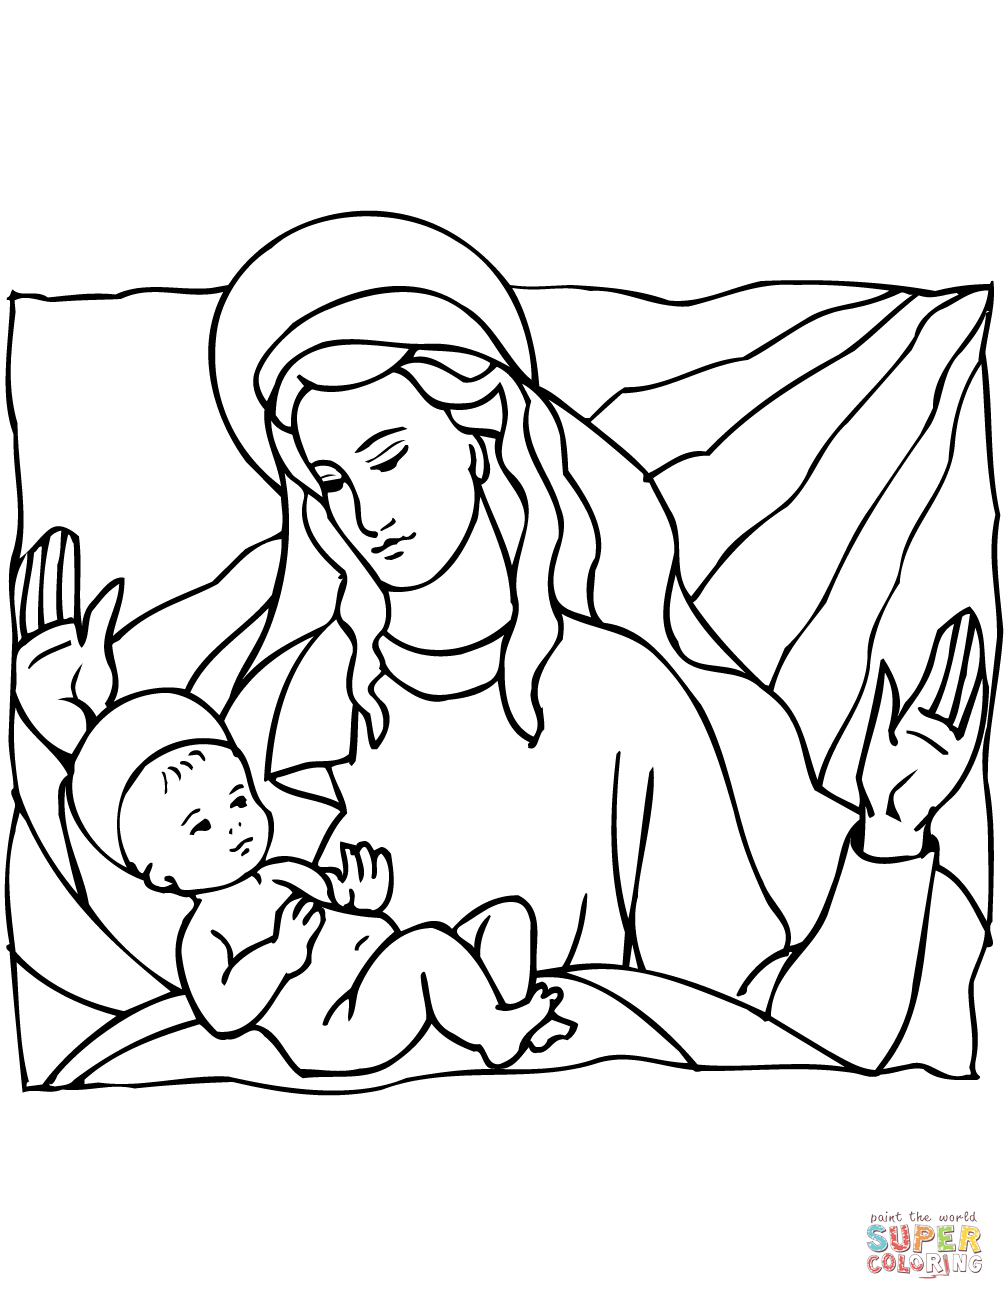 Mary And Baby Jesus Coloring Page | Free Printable Coloring Pages - Free Printable Christmas Baby Jesus Coloring Pages